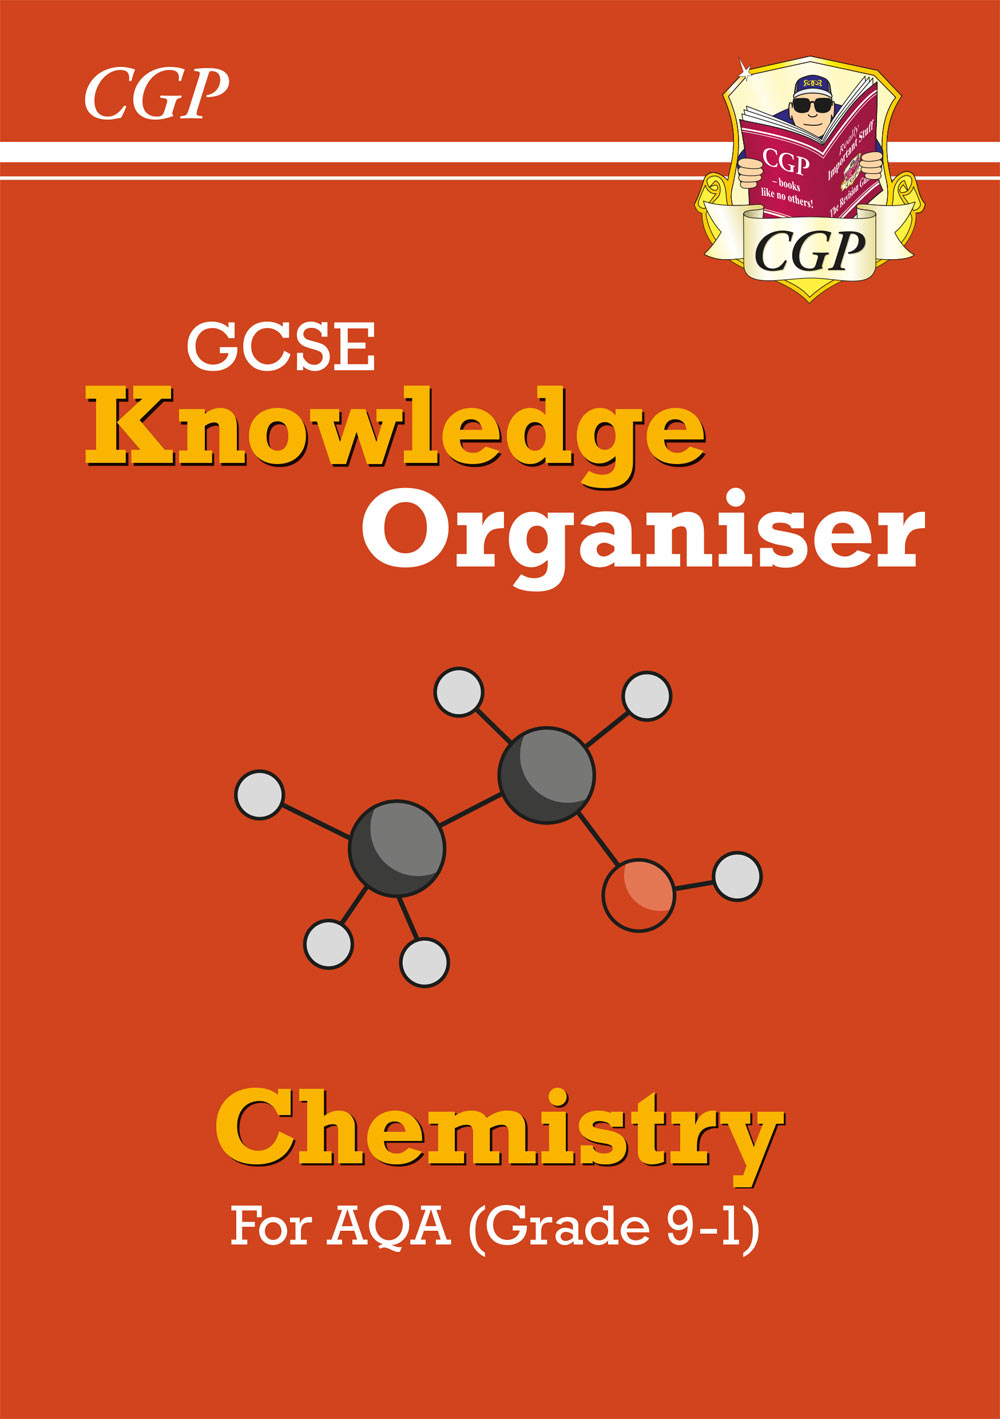 CANO41 - New GCSE Knowledge Organiser: AQA Chemistry (Grade 9-1)